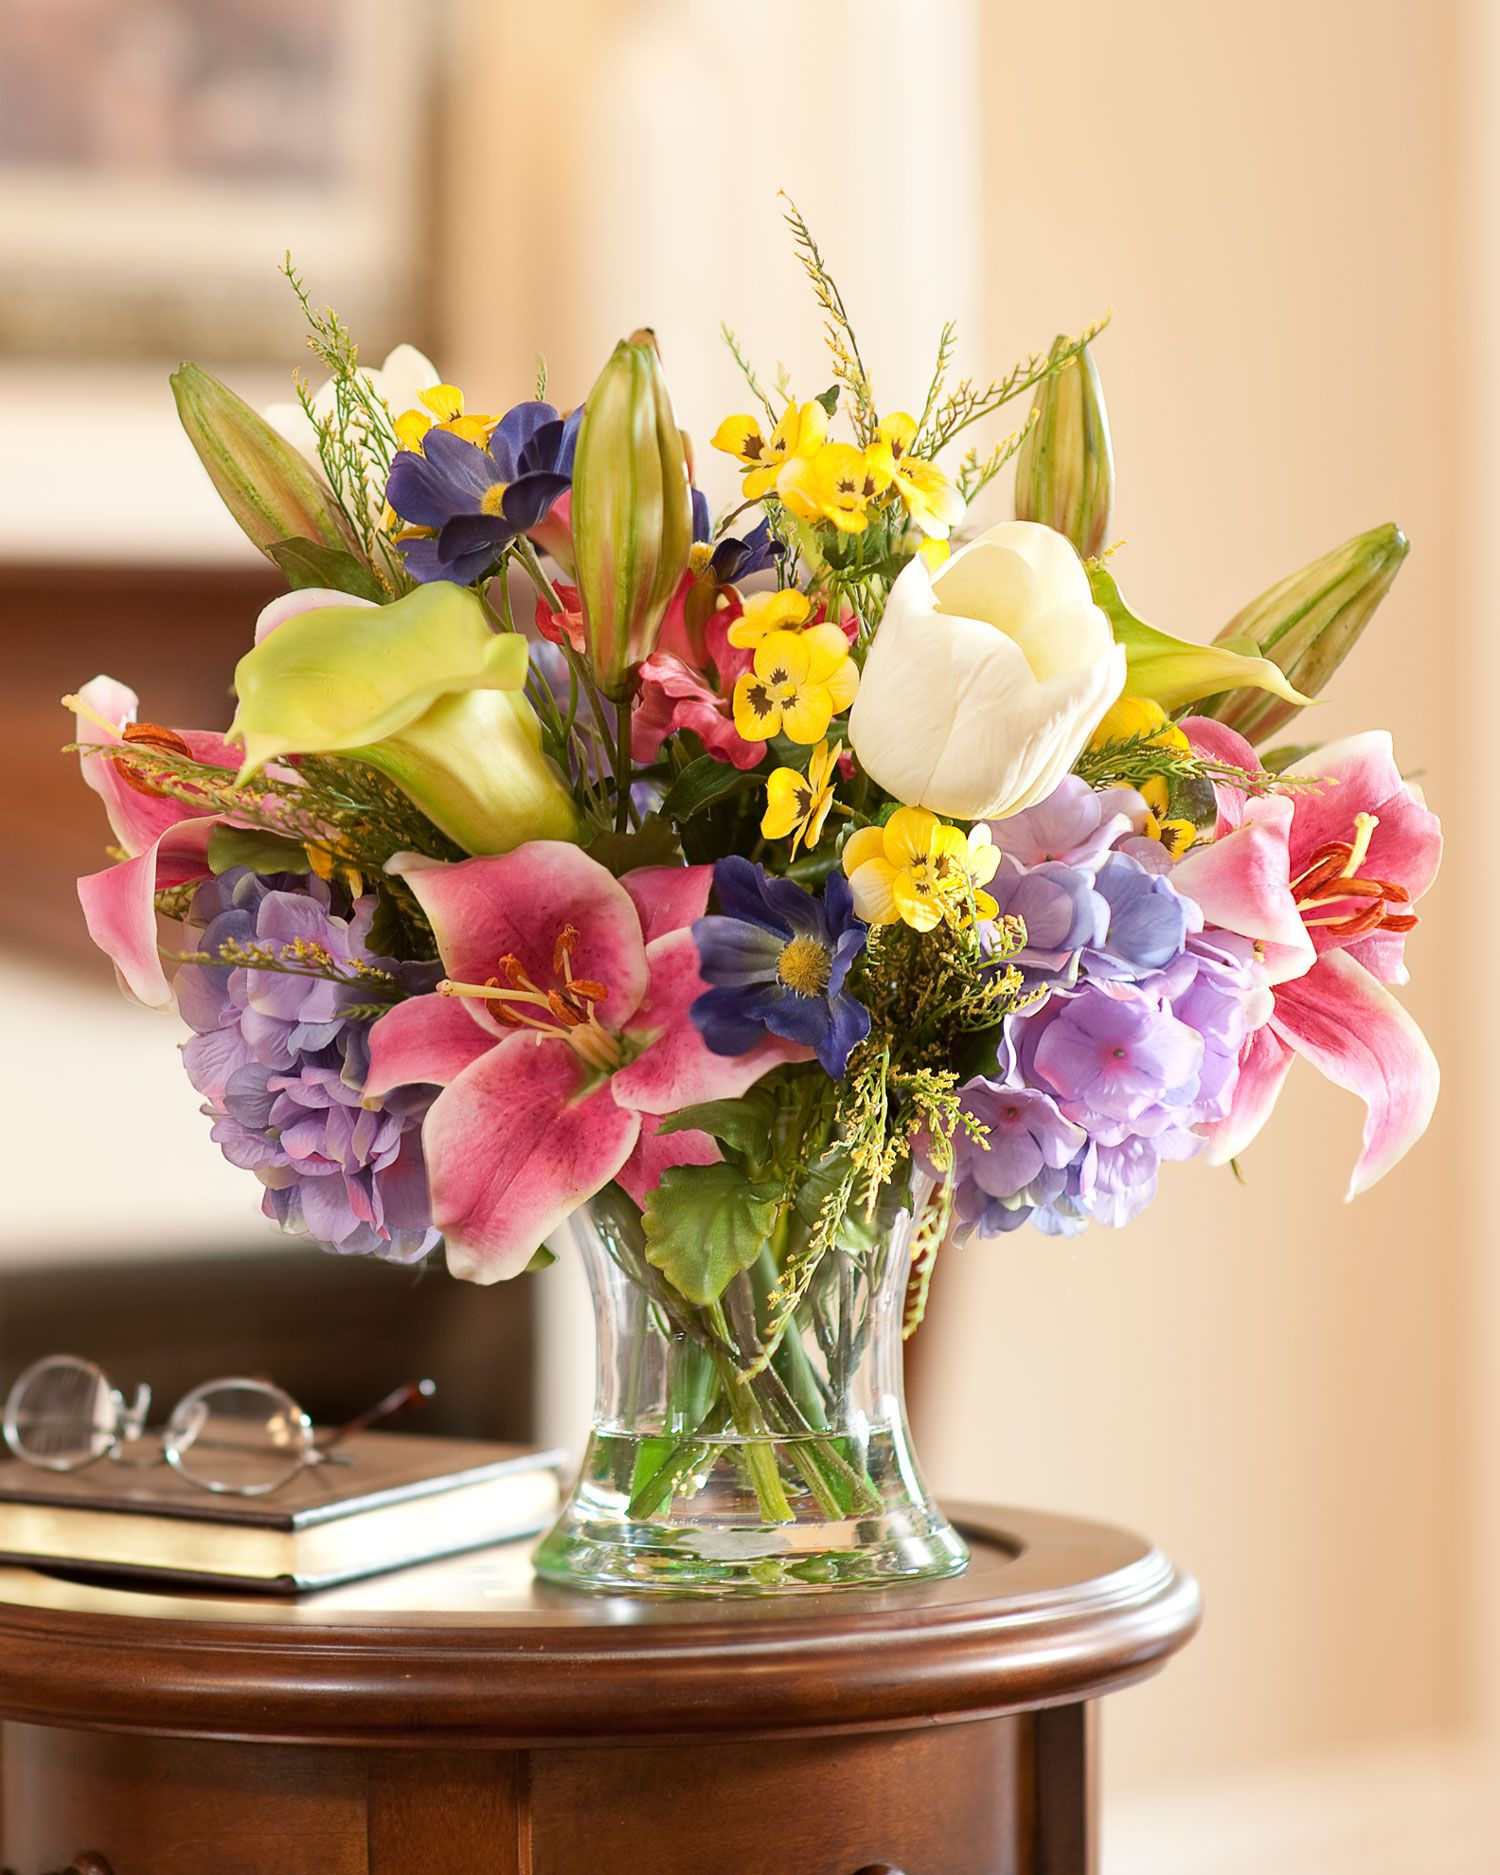 Distinctive Glorious Garden Silk Flower Centerpiece At Petals: Fake Floral Arrangements For Your Table Centerpiece